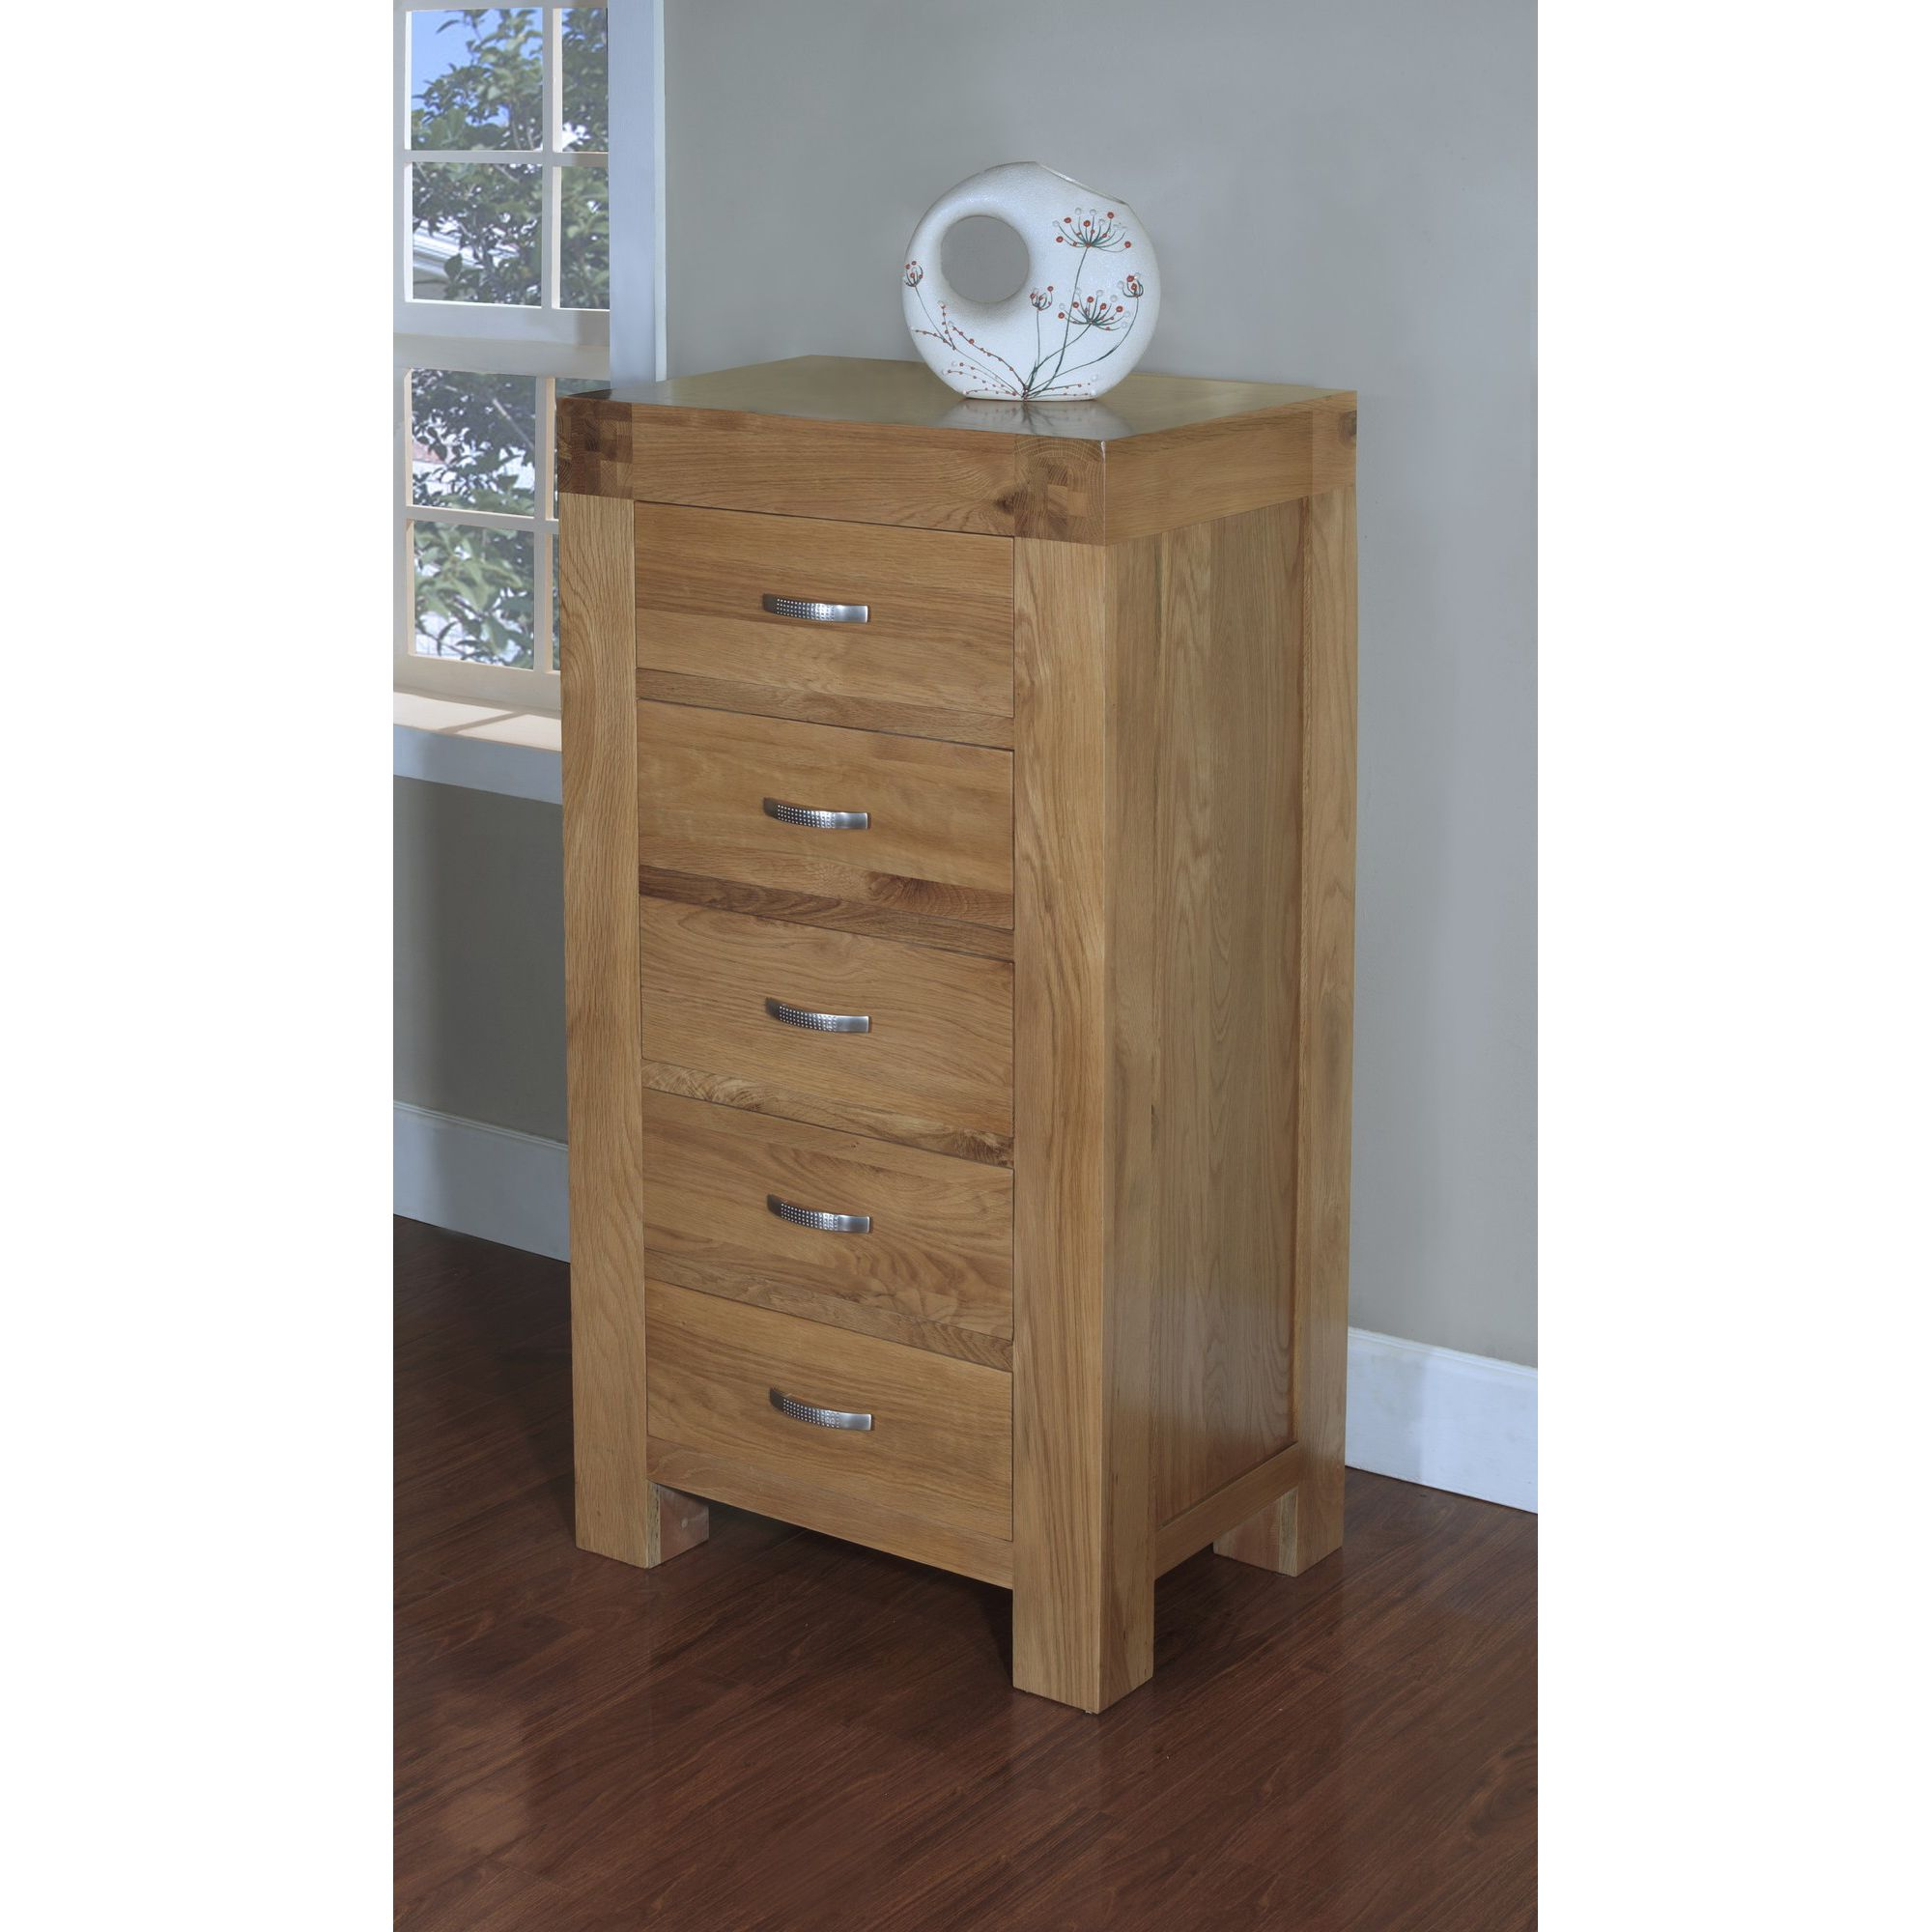 Hawkshead Rustic Oak Blonde Wellington Chest of 5 Drawers at Tesco Direct